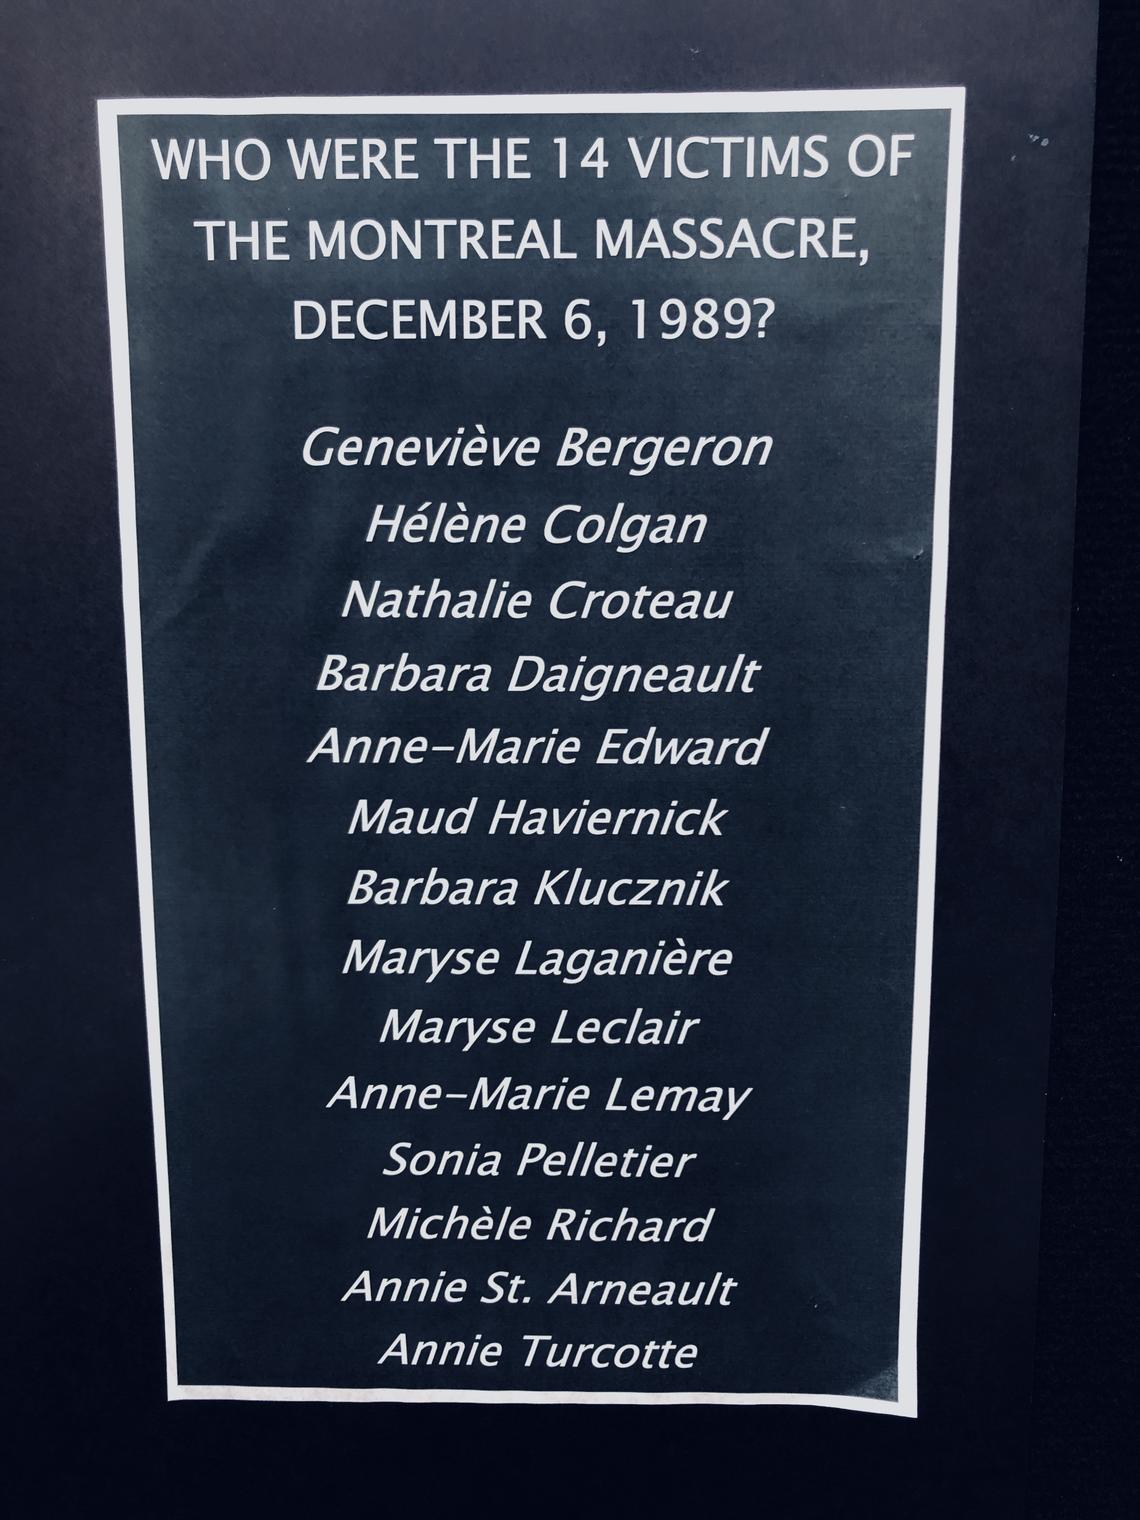 The names of those who died at Montreal's École Polytechnique.